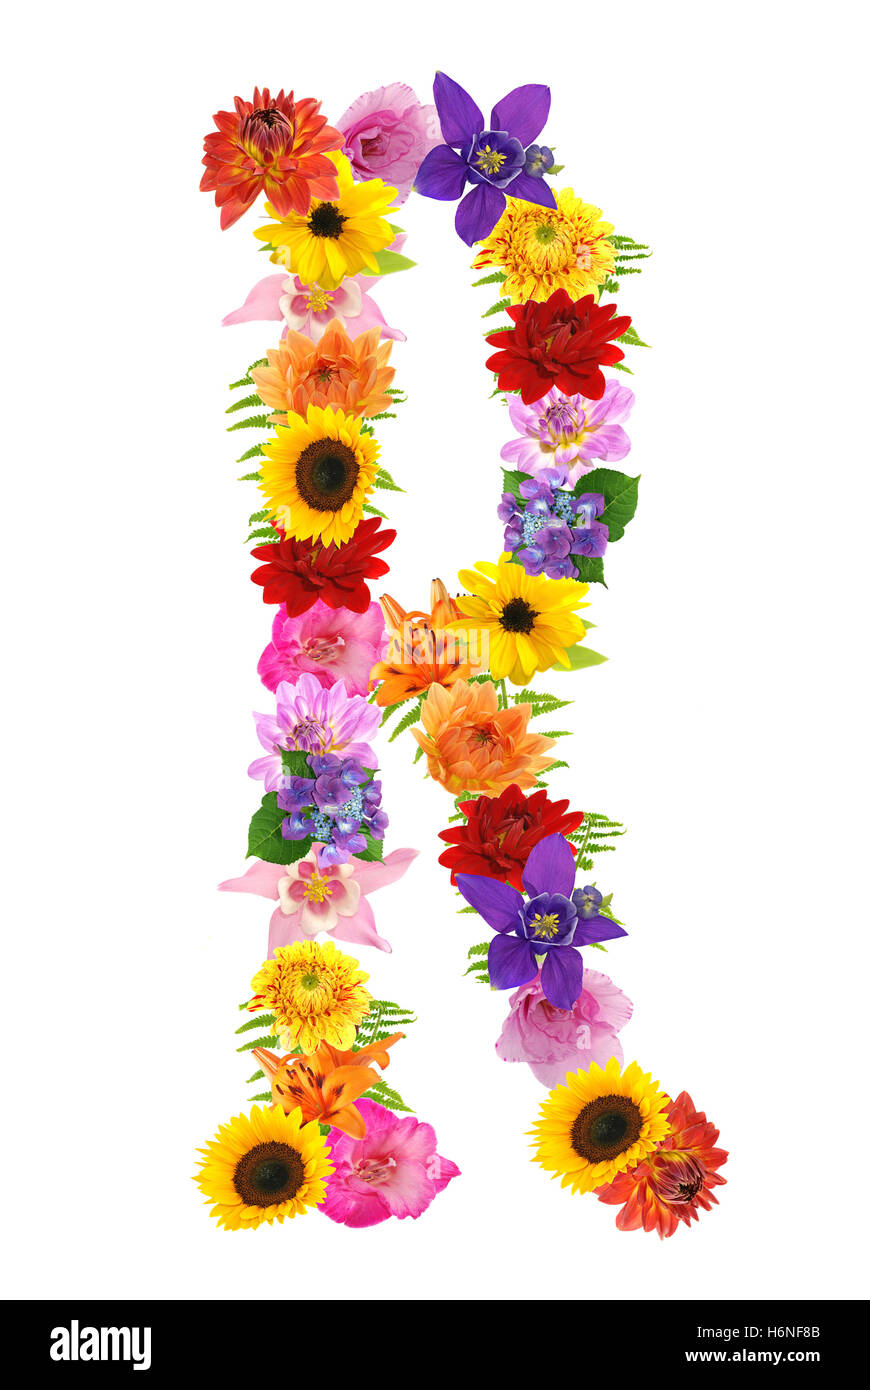 Letter r flowers stock photos letter r flowers stock images alamy r stock image altavistaventures Choice Image